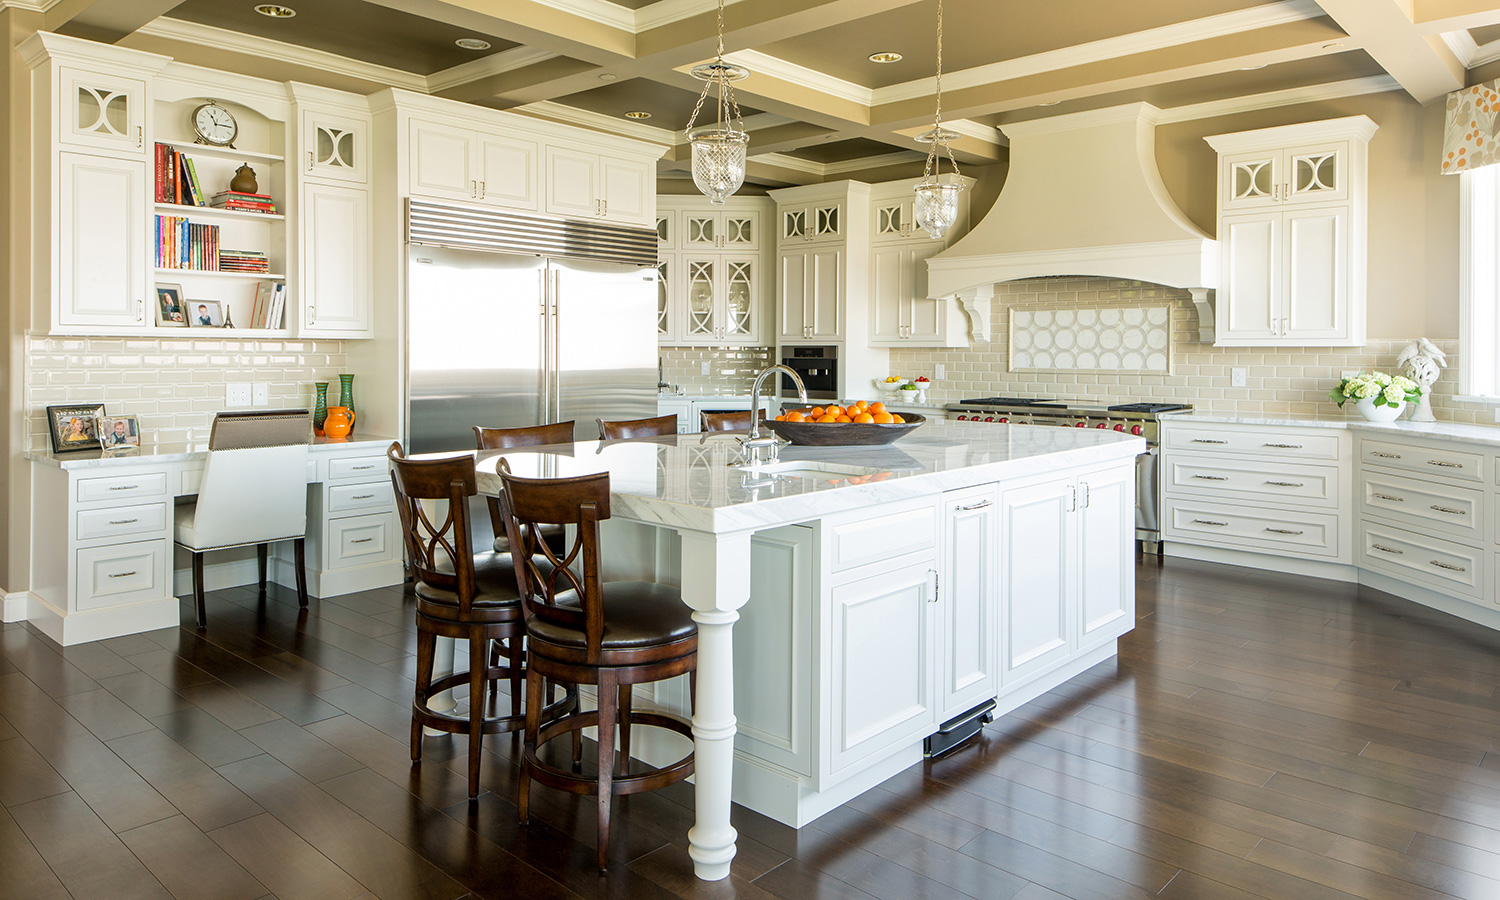 jason-ball-interiors-kitchen-view.jpg